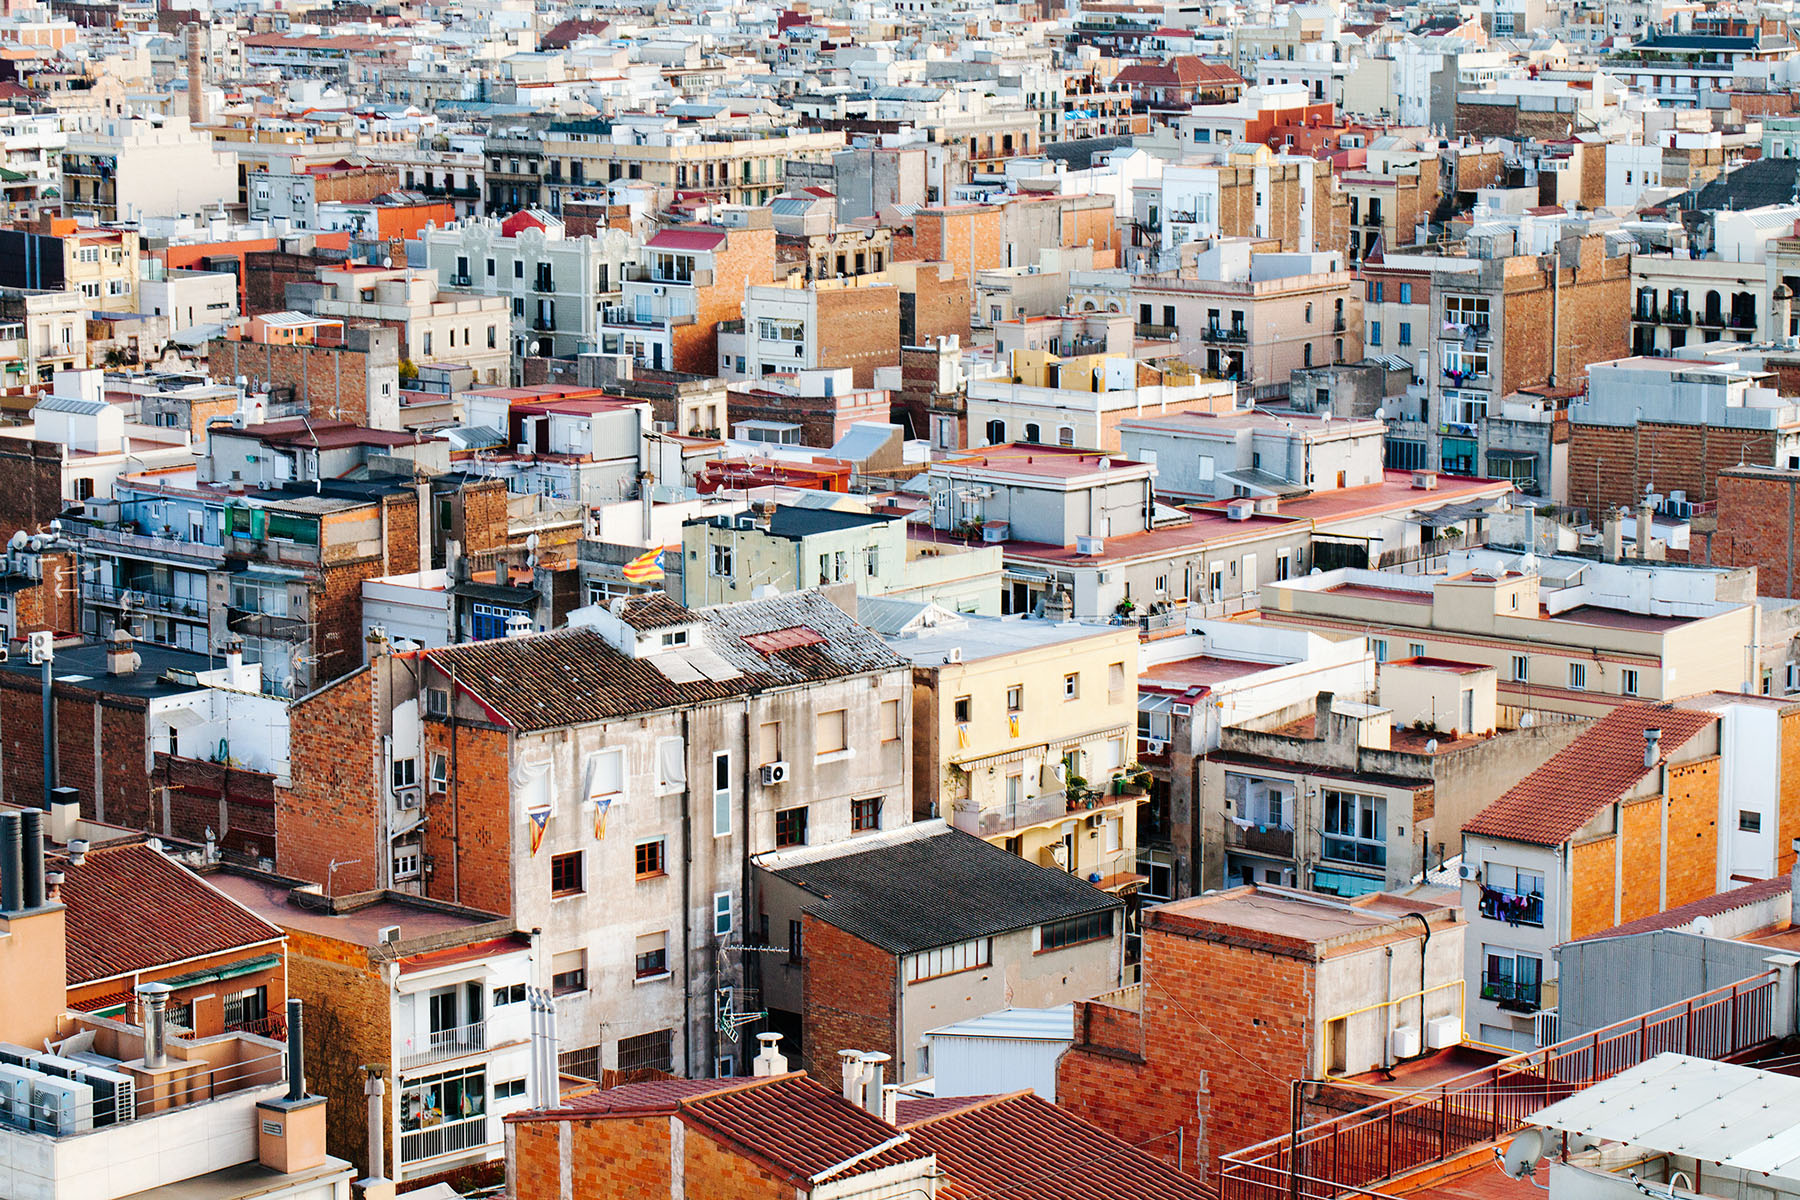 What will Spain's new real estate market 2021 look like post-covid? 1 What will Spain's new real estate market 2021 look like post-covid?